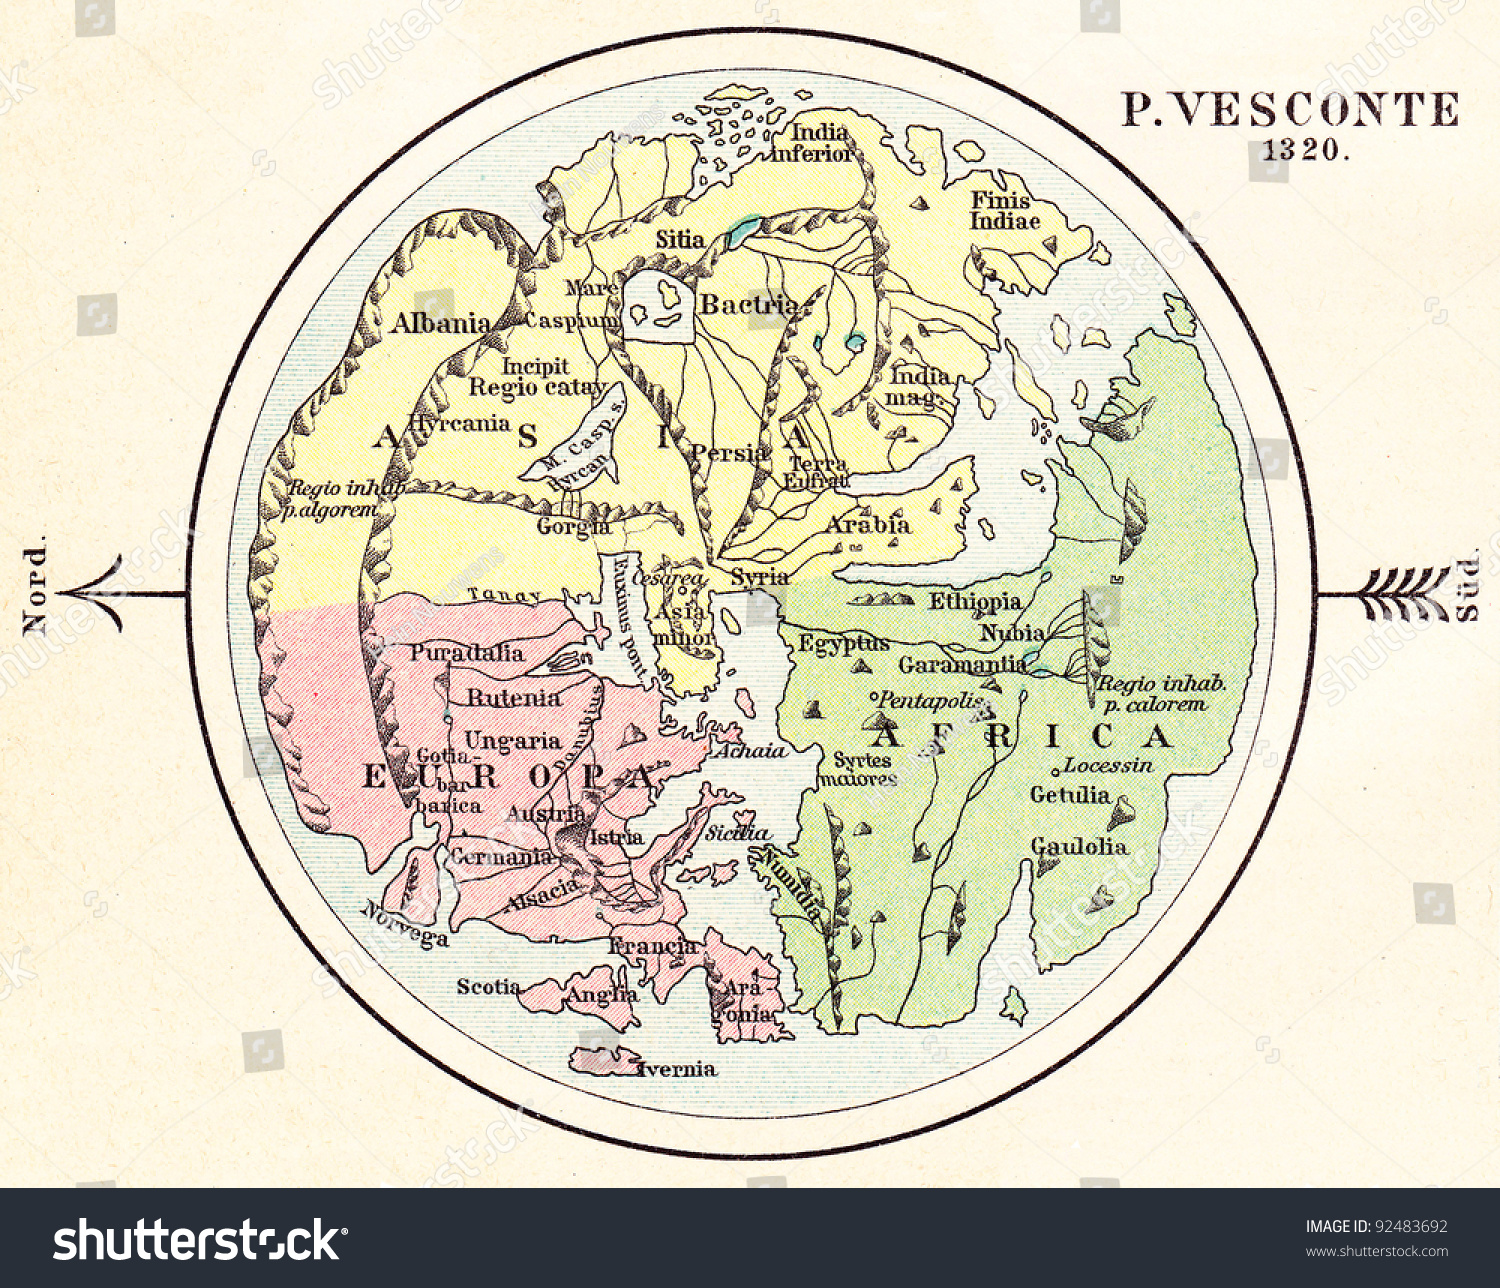 Old world map 1320 vintage illustration stock illustration 92483692 old world map 1320 vintage illustration from meyers konversations lexikon published in gumiabroncs Image collections